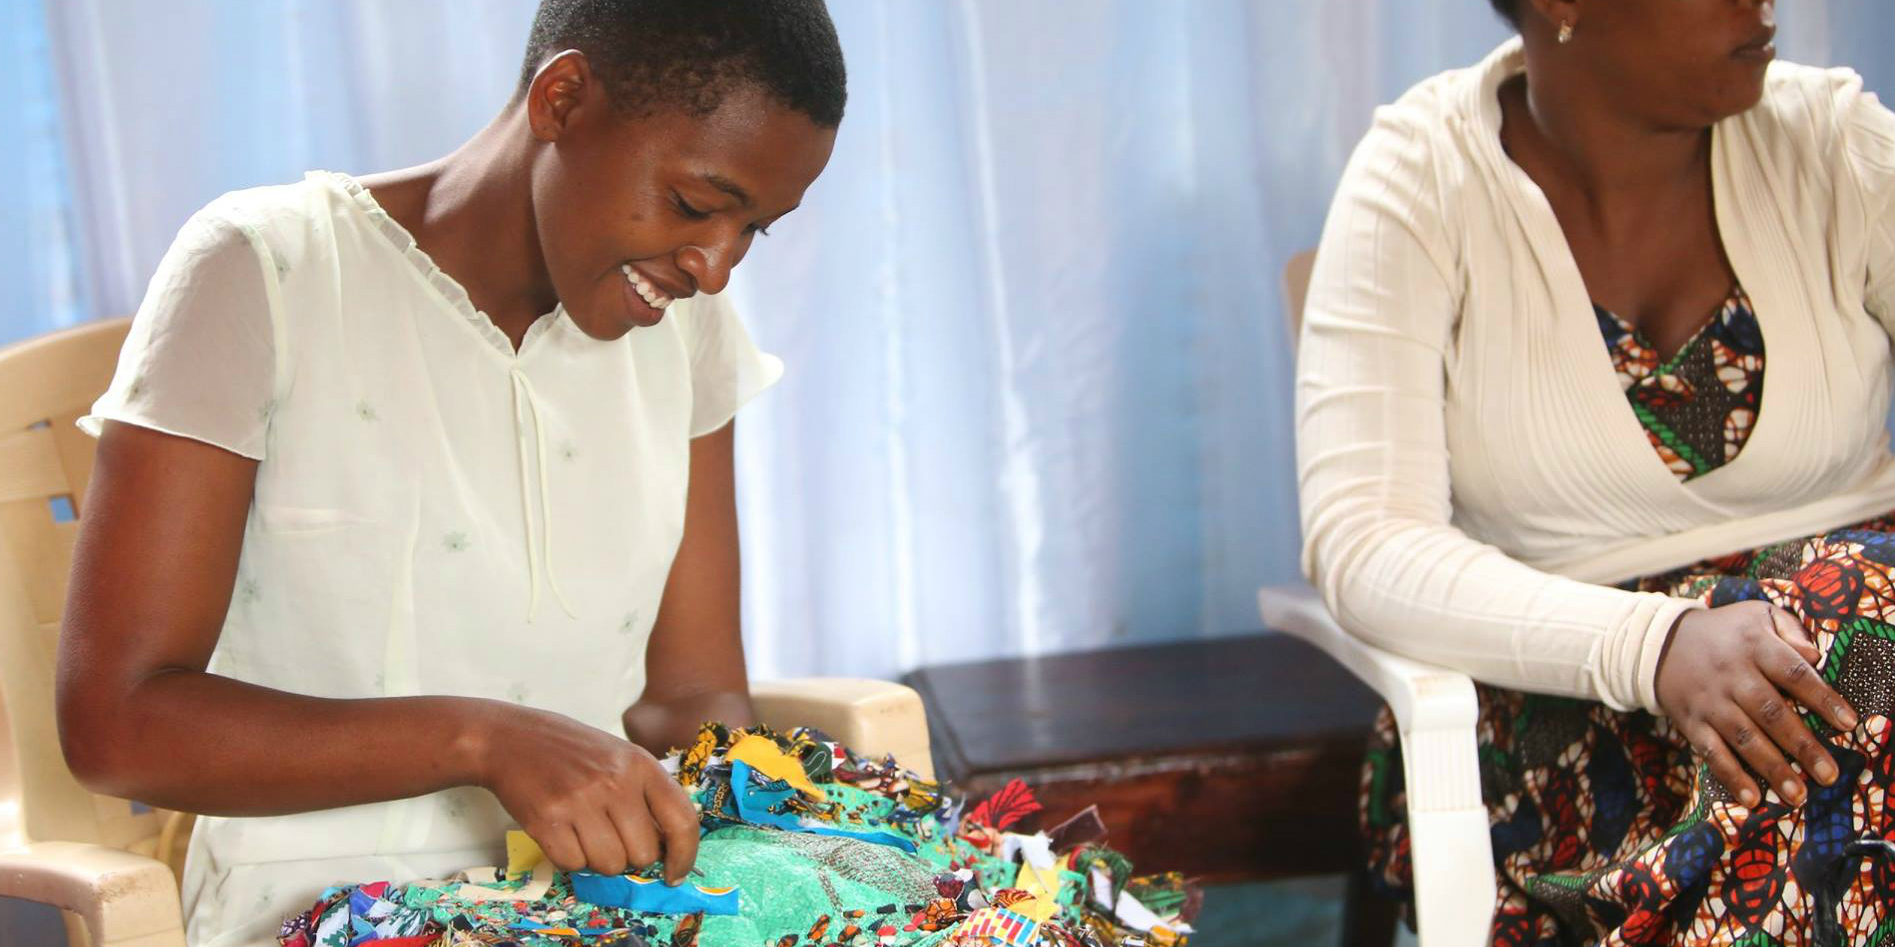 Tanzania volunteer programs such as this girl empowerment project, help young women to learn entrepreneurial skills.